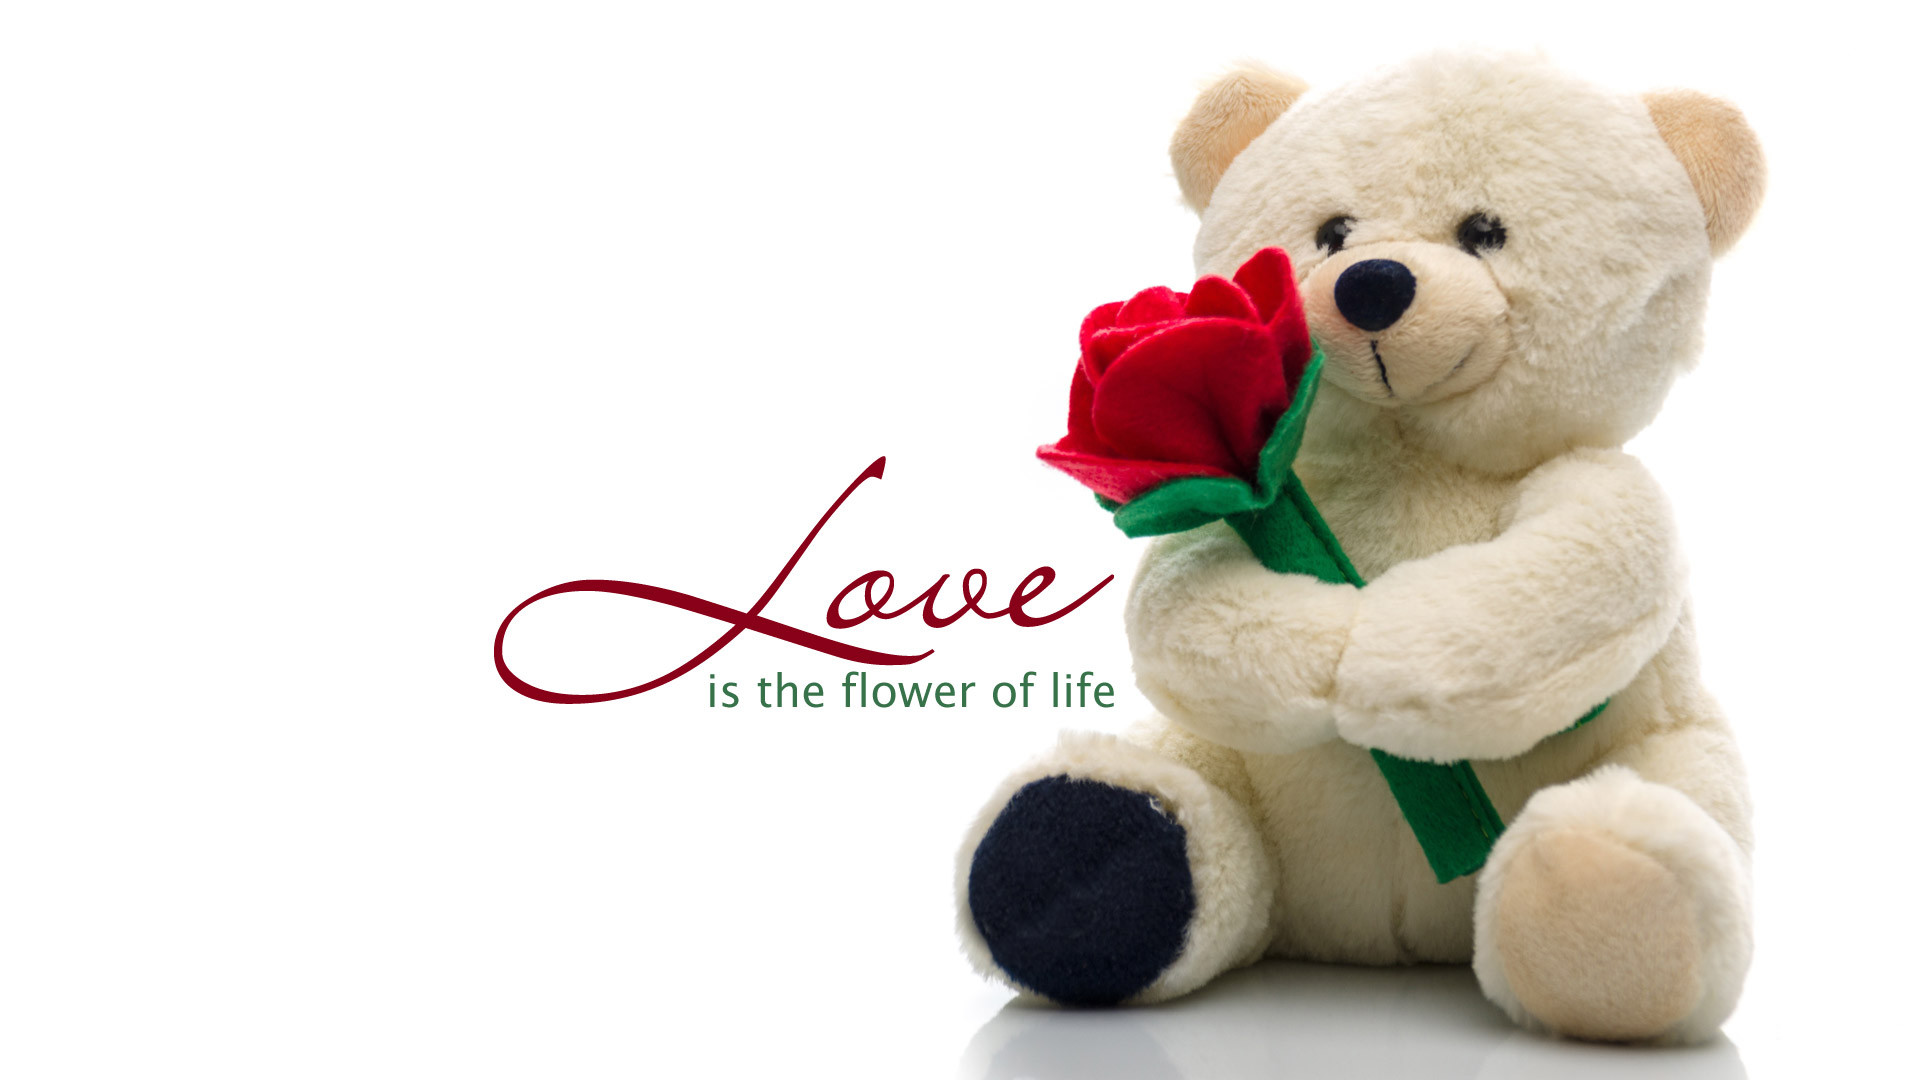 Love teddy bear wallpapers 48 images 1920x1080 cute teddy bear love you with flowers hd wallpapers voltagebd Image collections